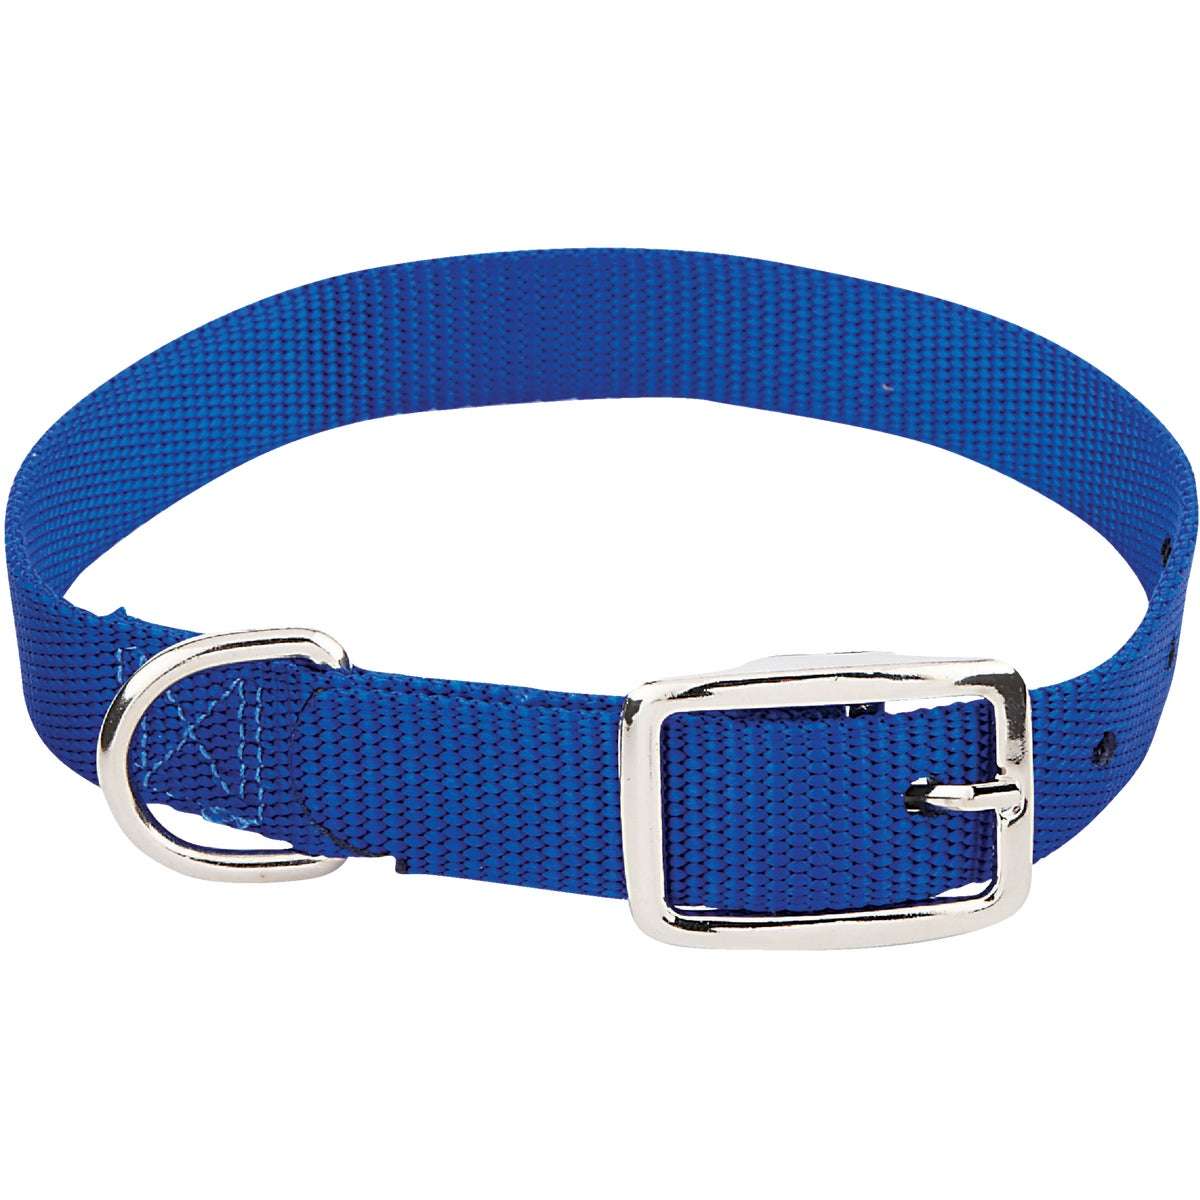 3/4X18 NYLON COLLAR - 31418 by Westminster Pet